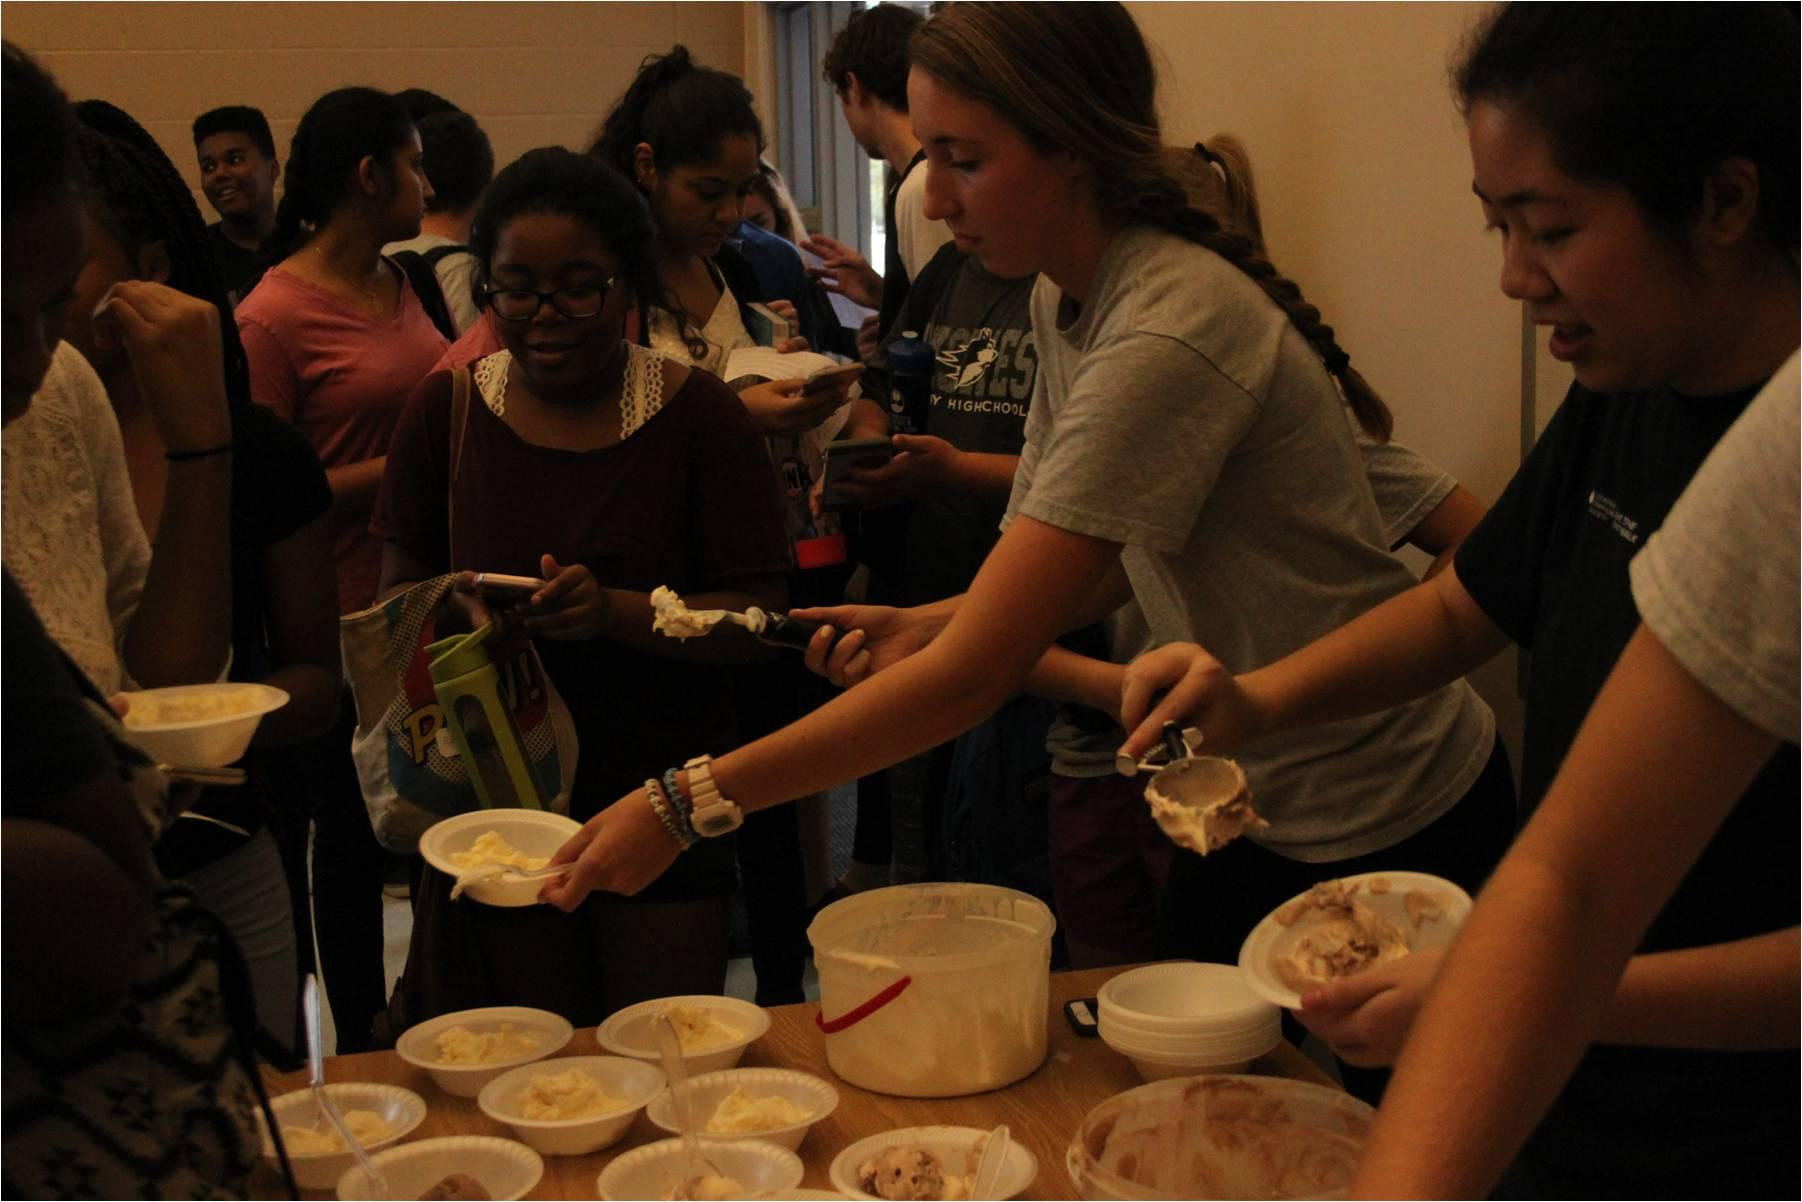 Key Club officers,  Madison Pleasants and Christina Nguyen serve ice cream to members. The first meeting was held in the Group Projects Room.